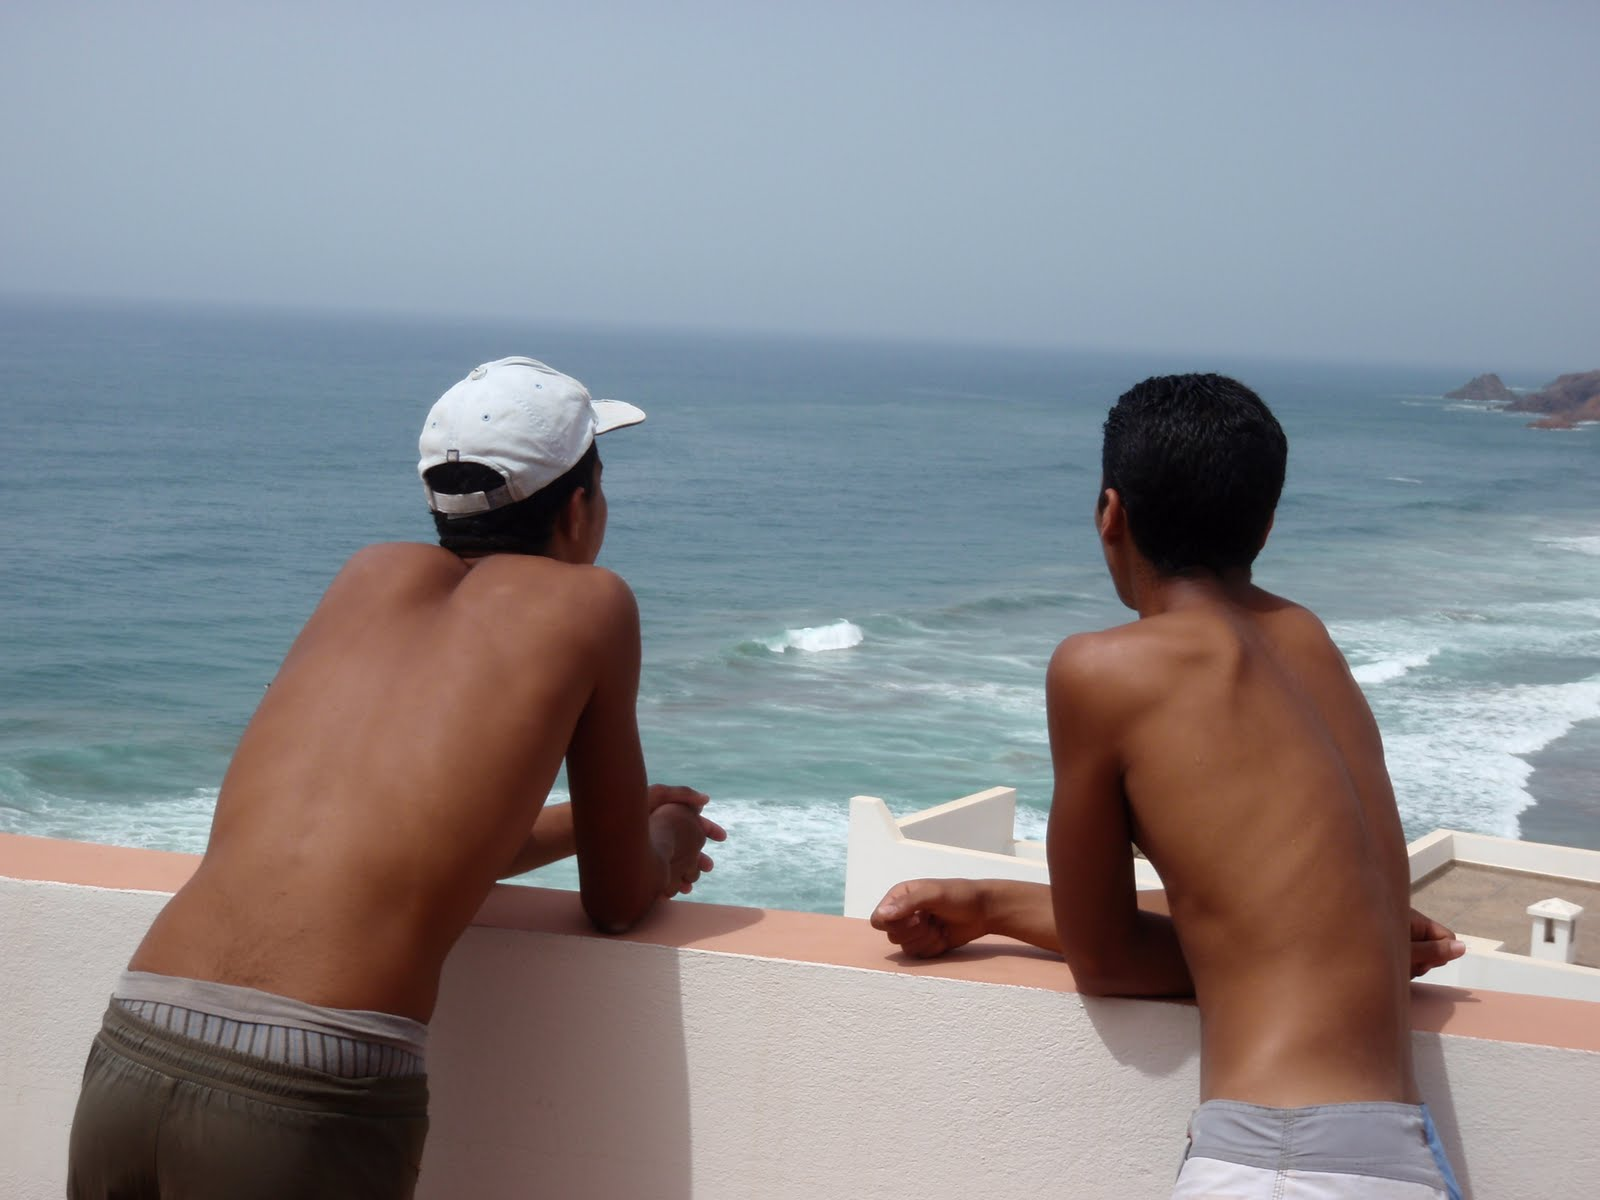 Gay in Morocco: The experience is very different for